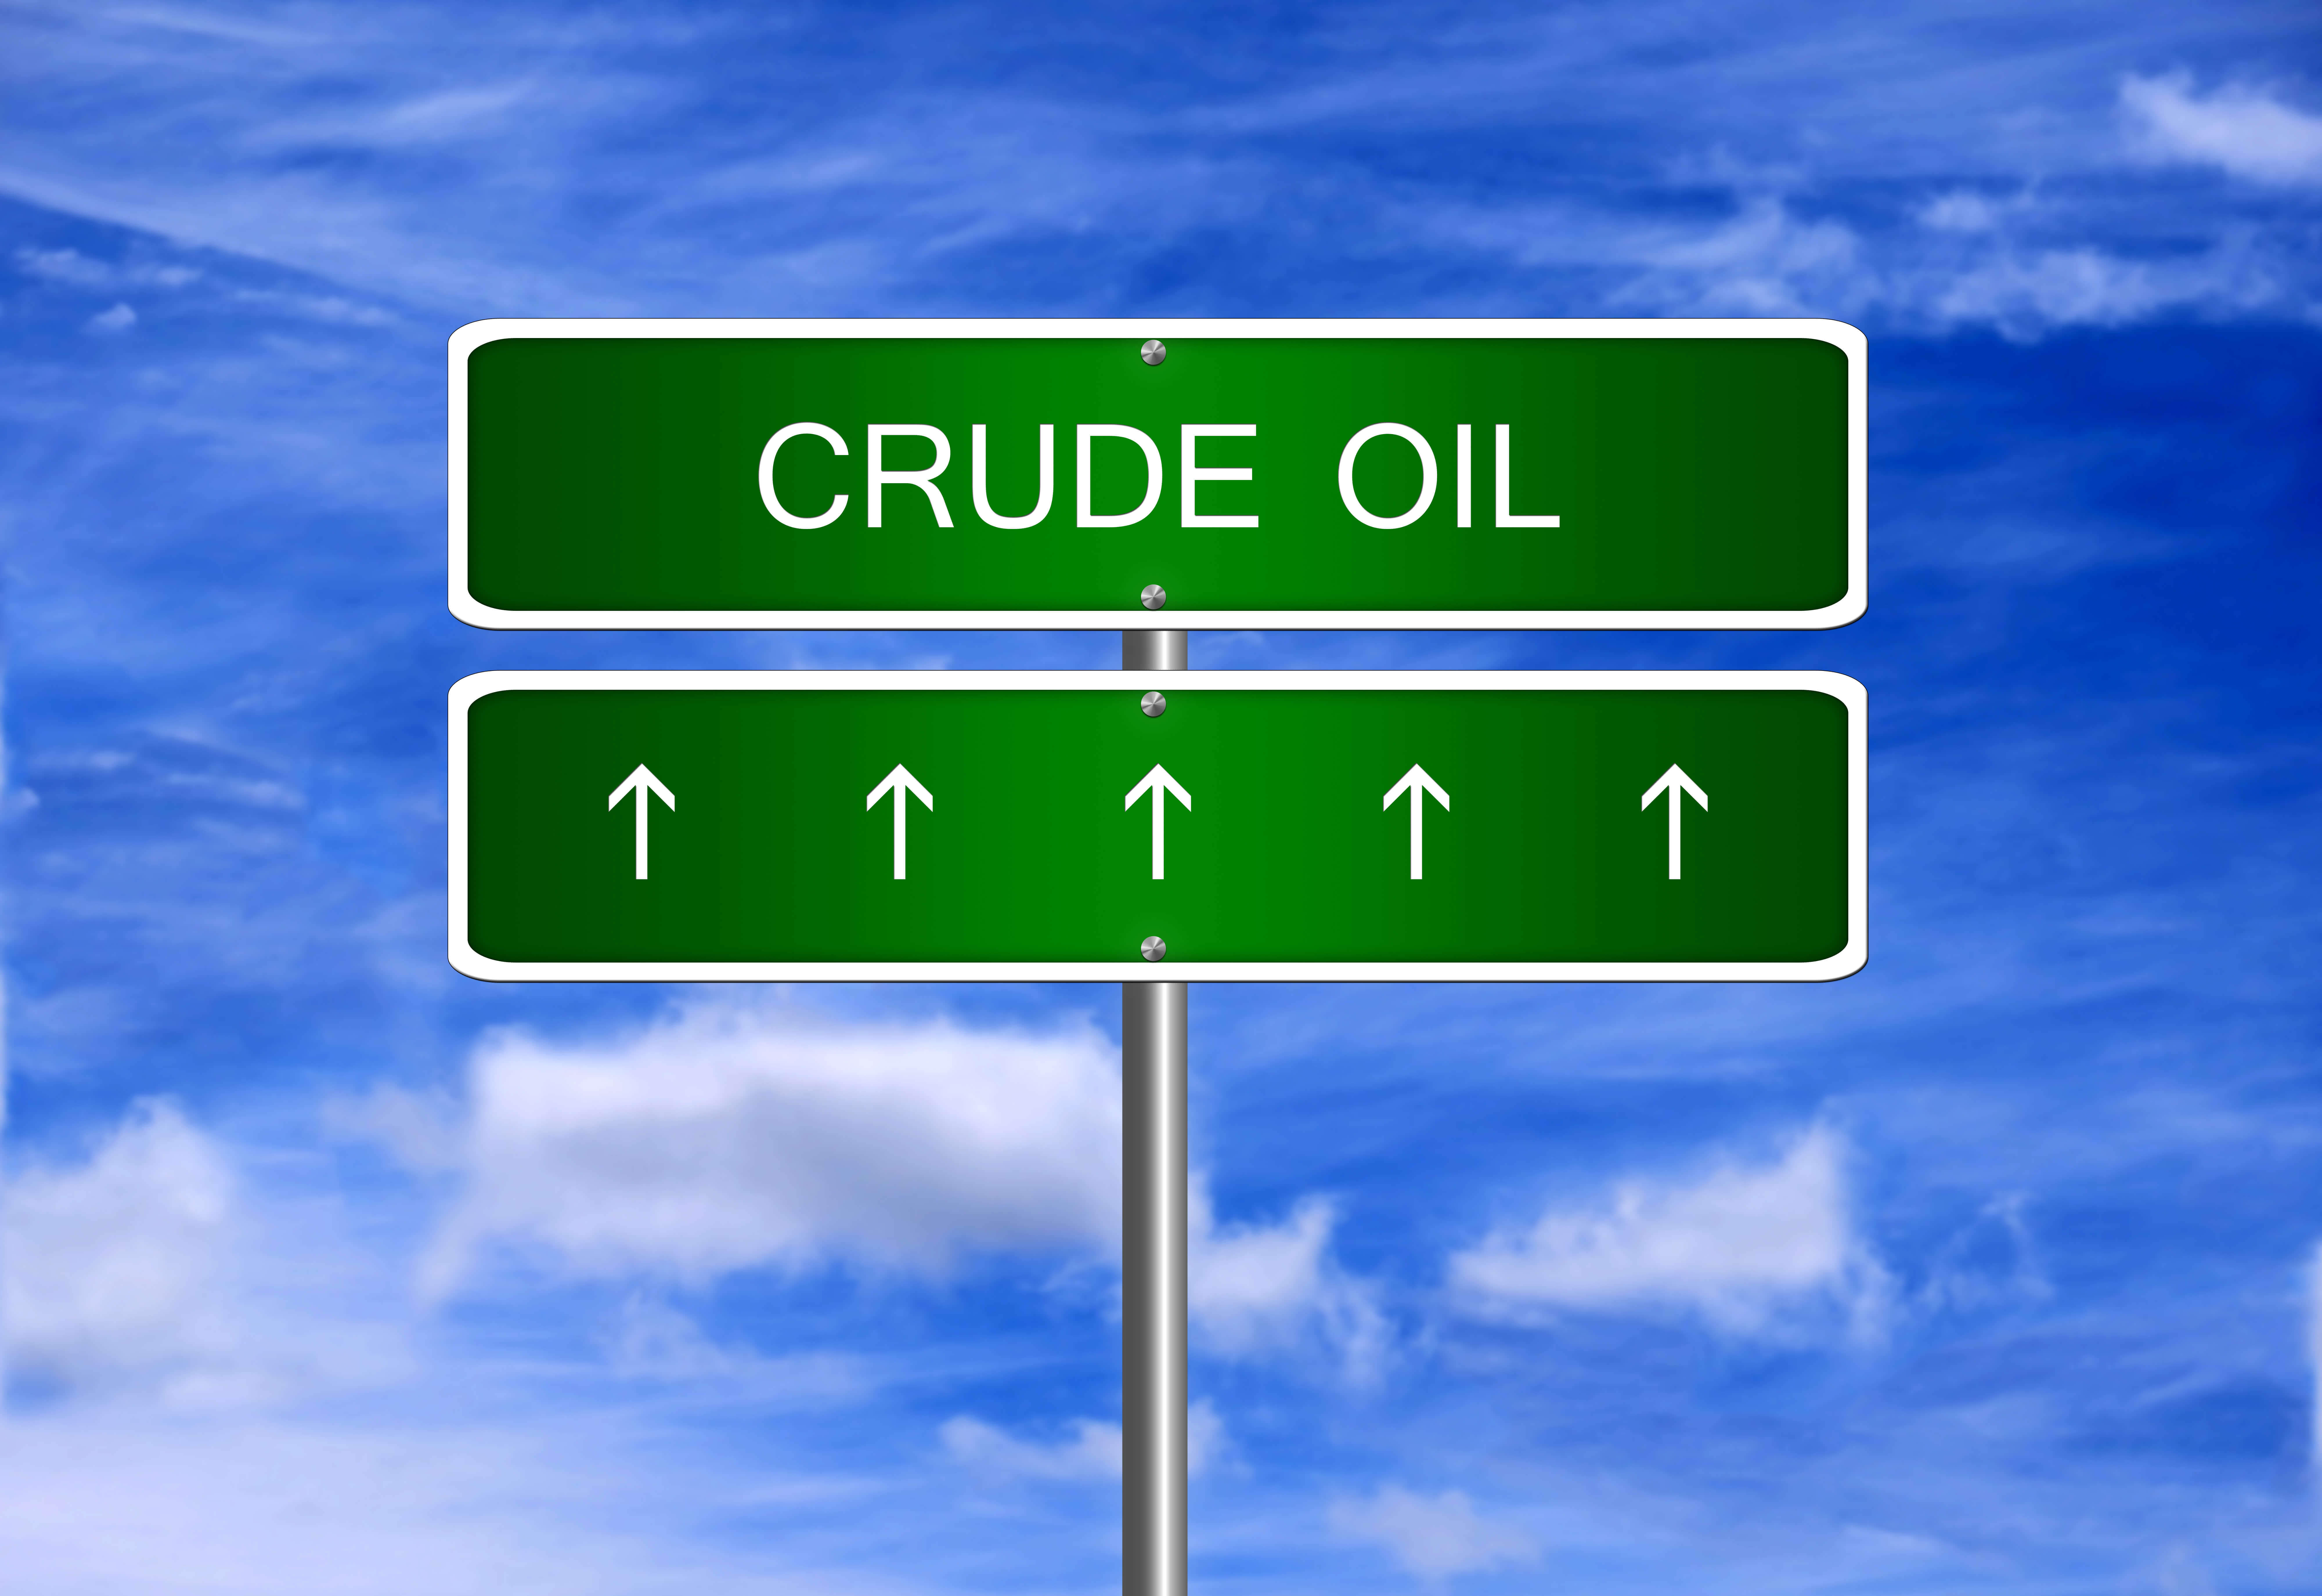 Oil industry and regional tensions